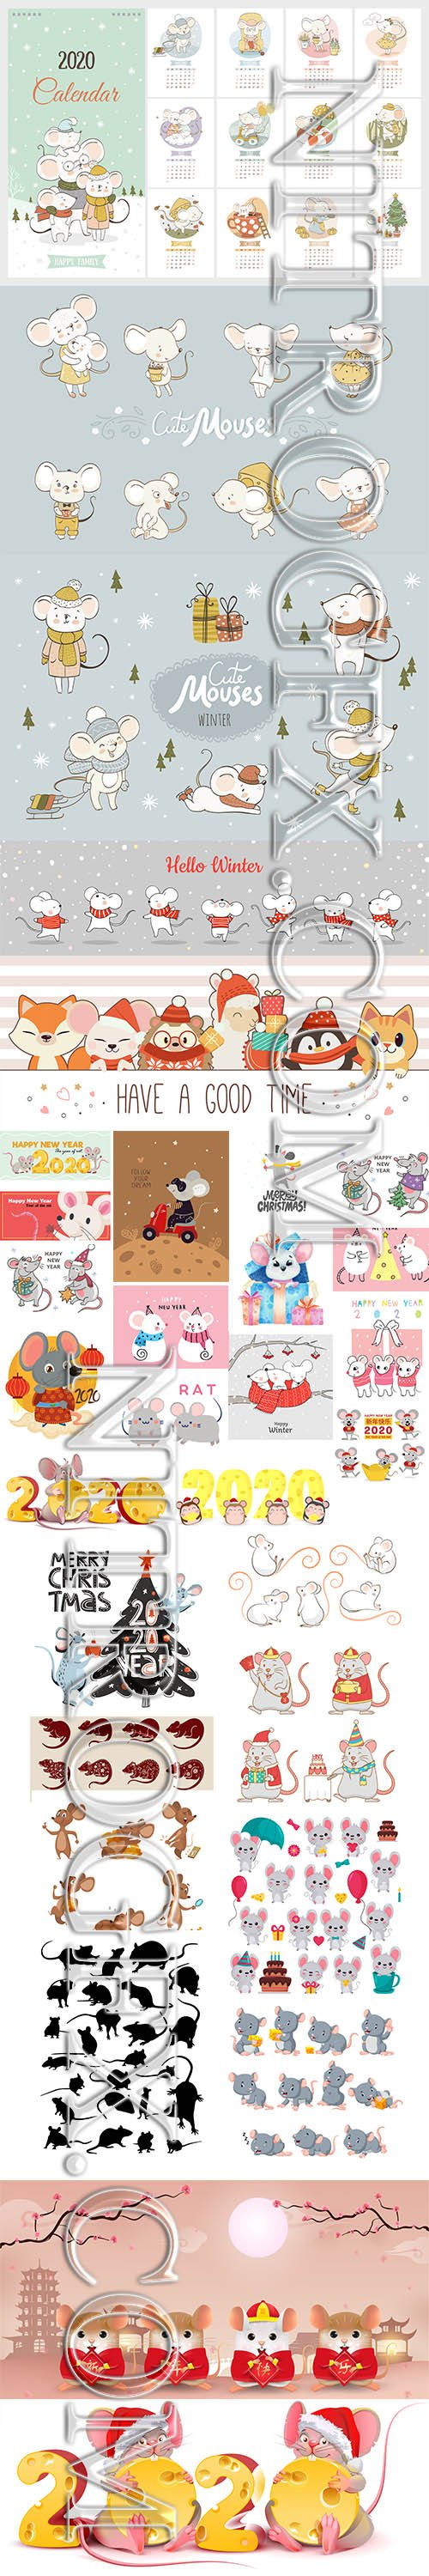 Collection of Cartoon Cute New Year Mouses Celebration with Calendar 2020